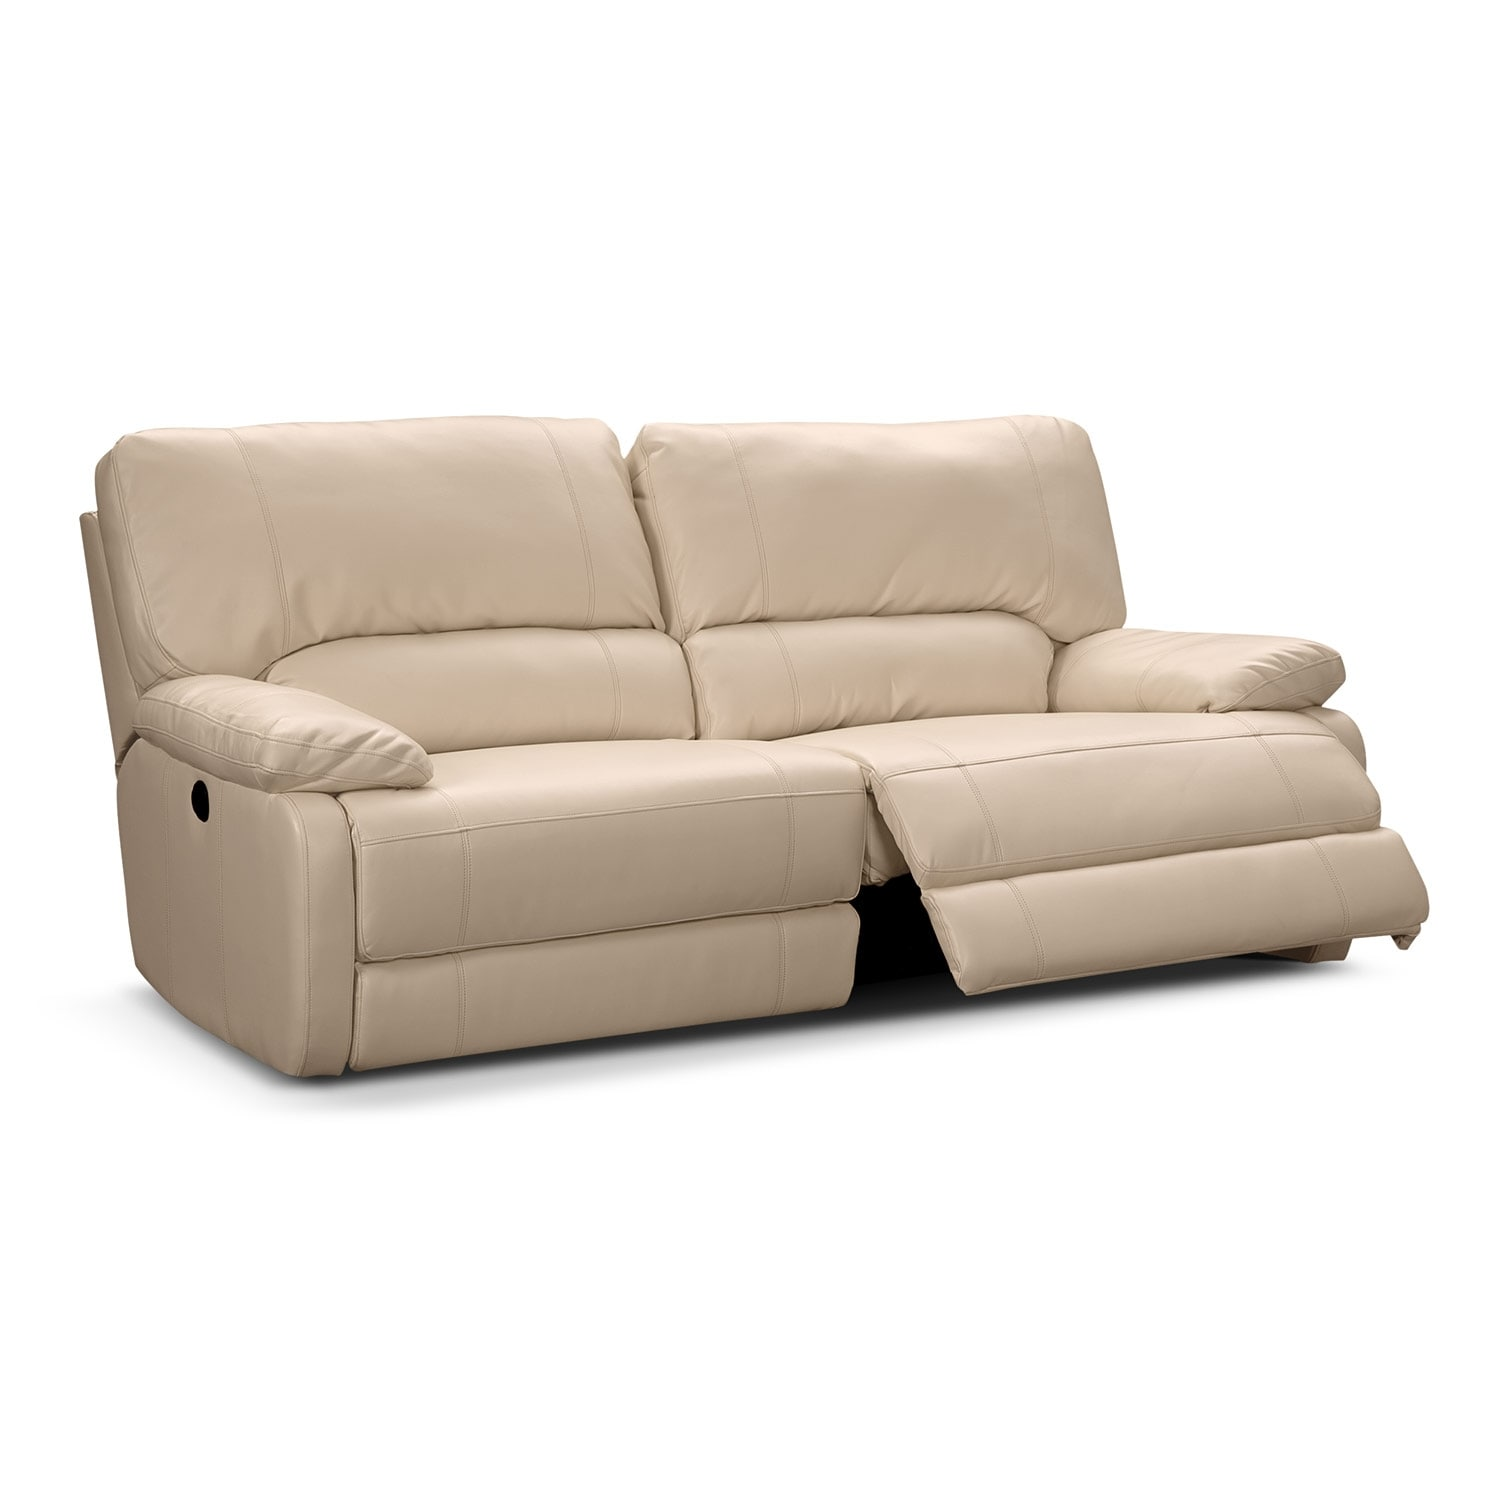 Coronado leather power reclining sofa value city furniture Power reclining sofas and loveseats